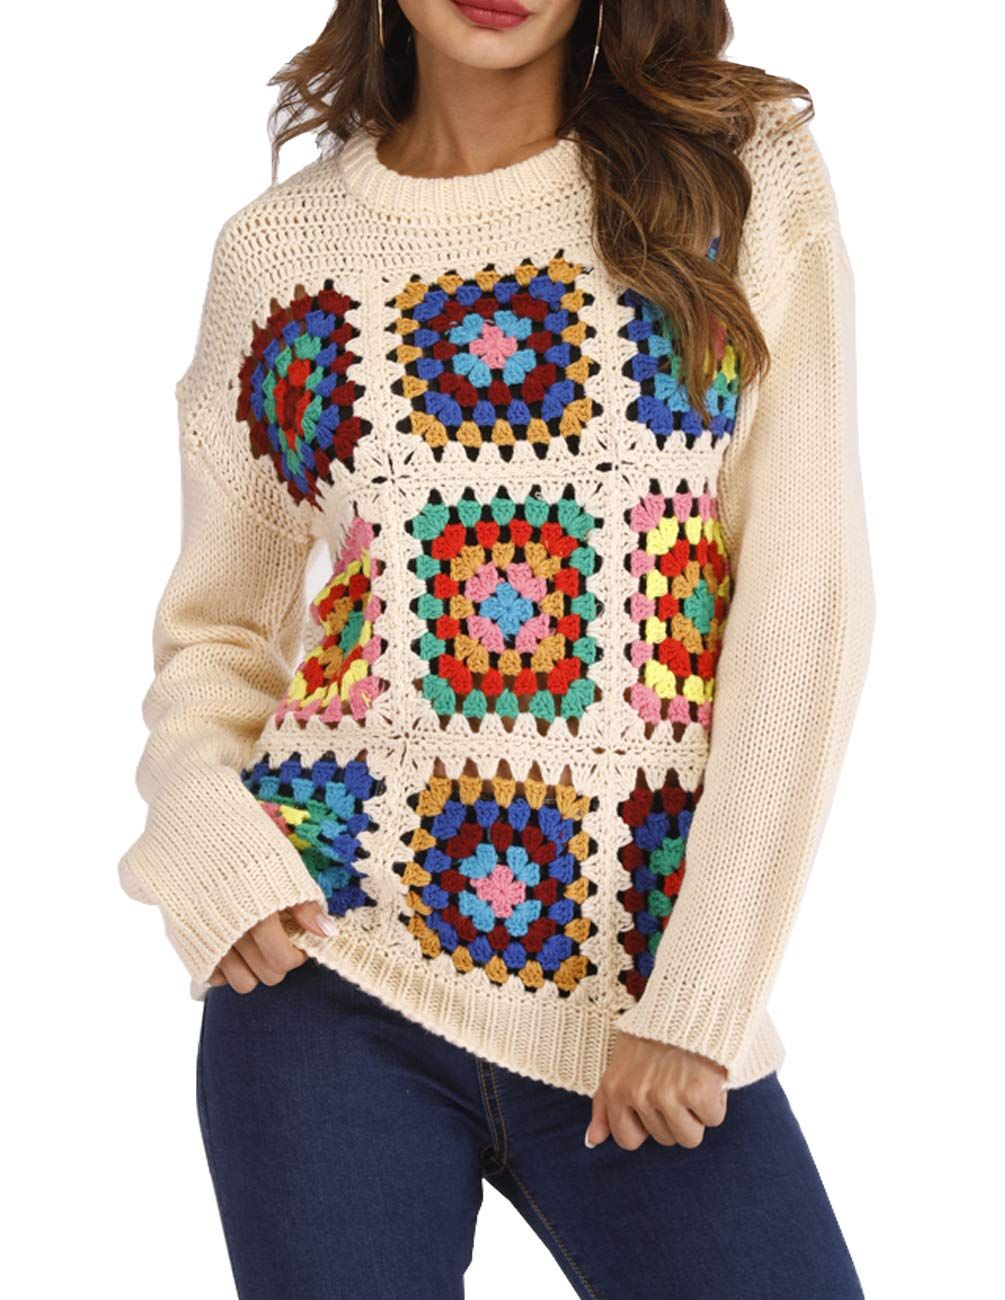 66fdd2445c Blingfit Womens Long Sleeve Crew Neck Chunky Boho Sweater Tops Knit  Pullover Sweater    You can find out more details at the link of the image.